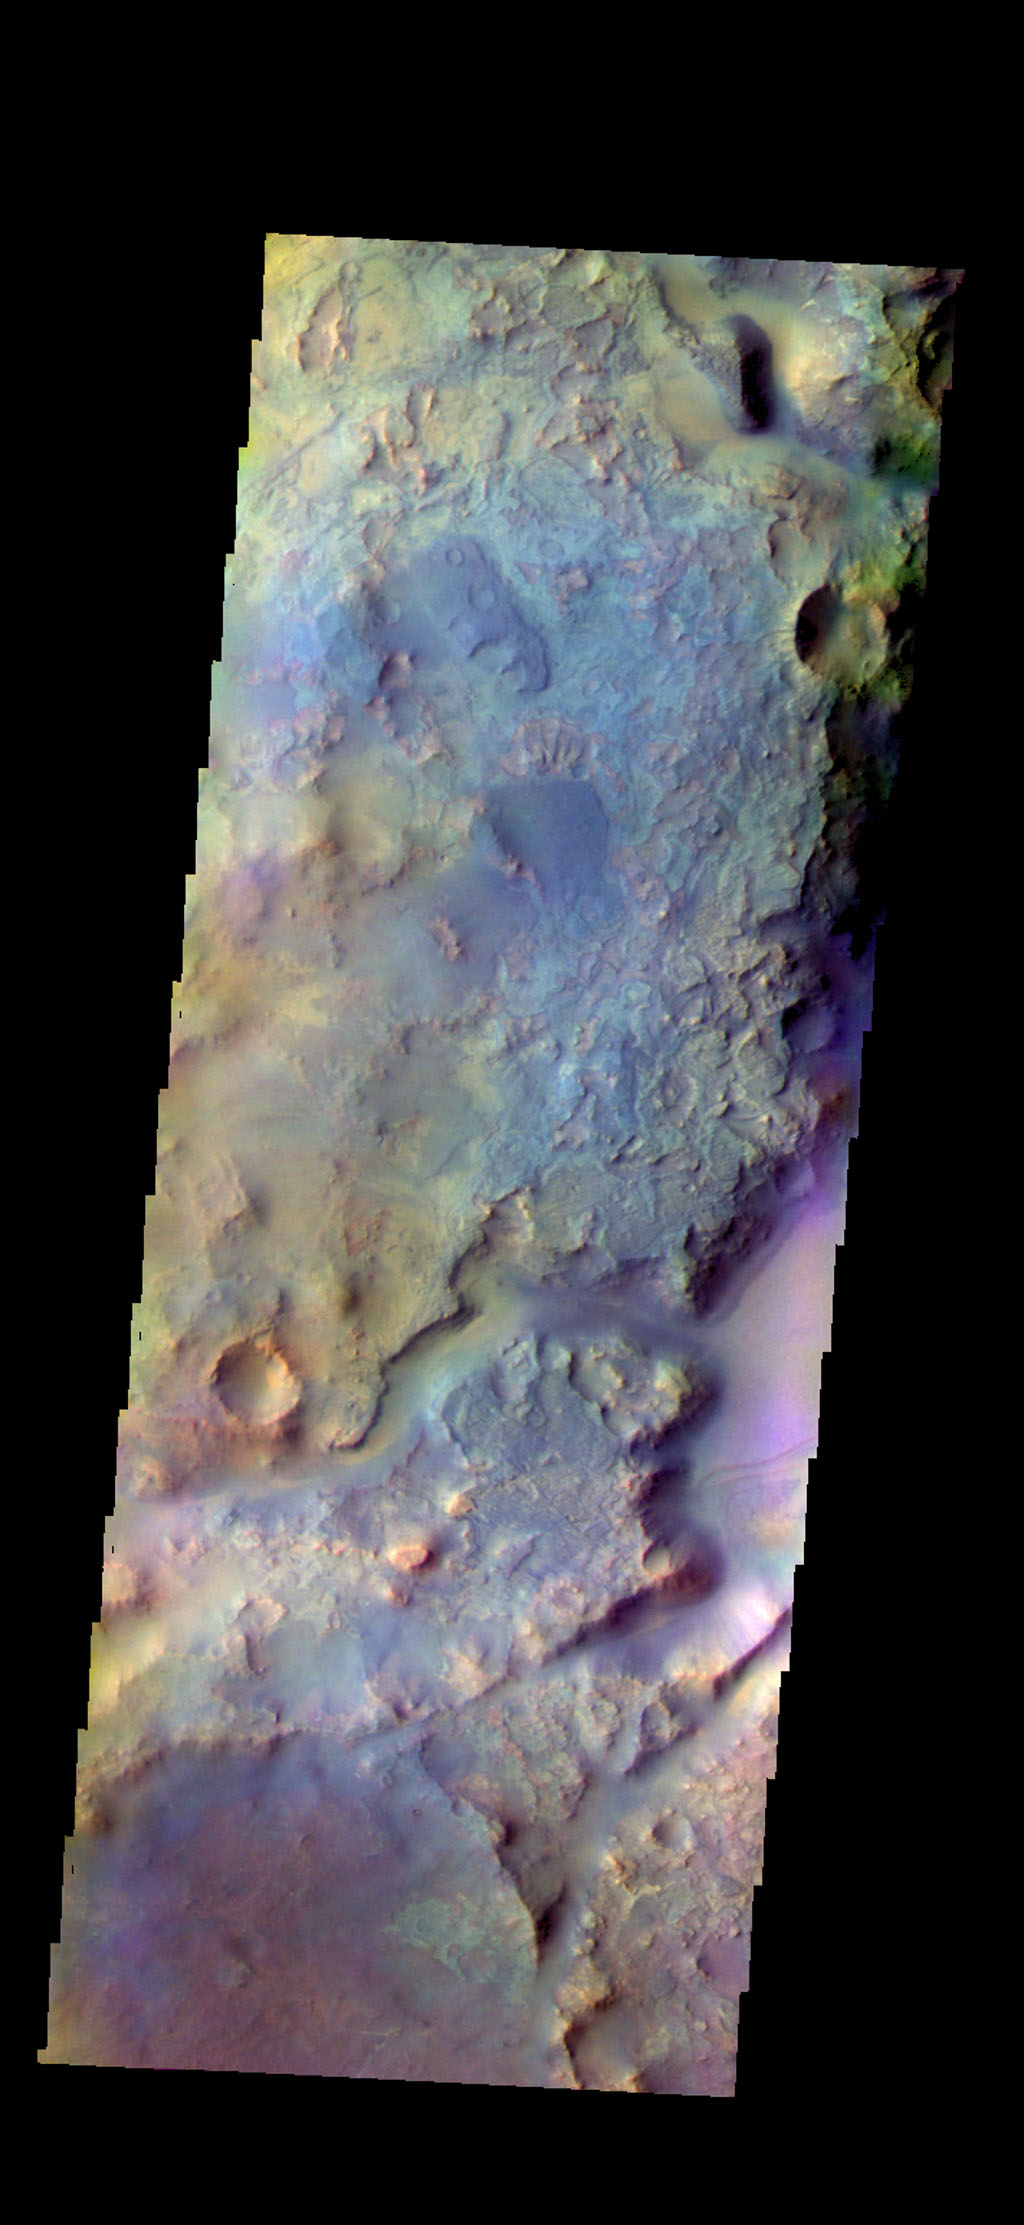 The THEMIS camera contains 5 filters. The data from different filters can be combined in multiple ways to create a false color image. This image from NASA's 2001 Mars Odyssey spacecraft shows part of Nili Fossae.